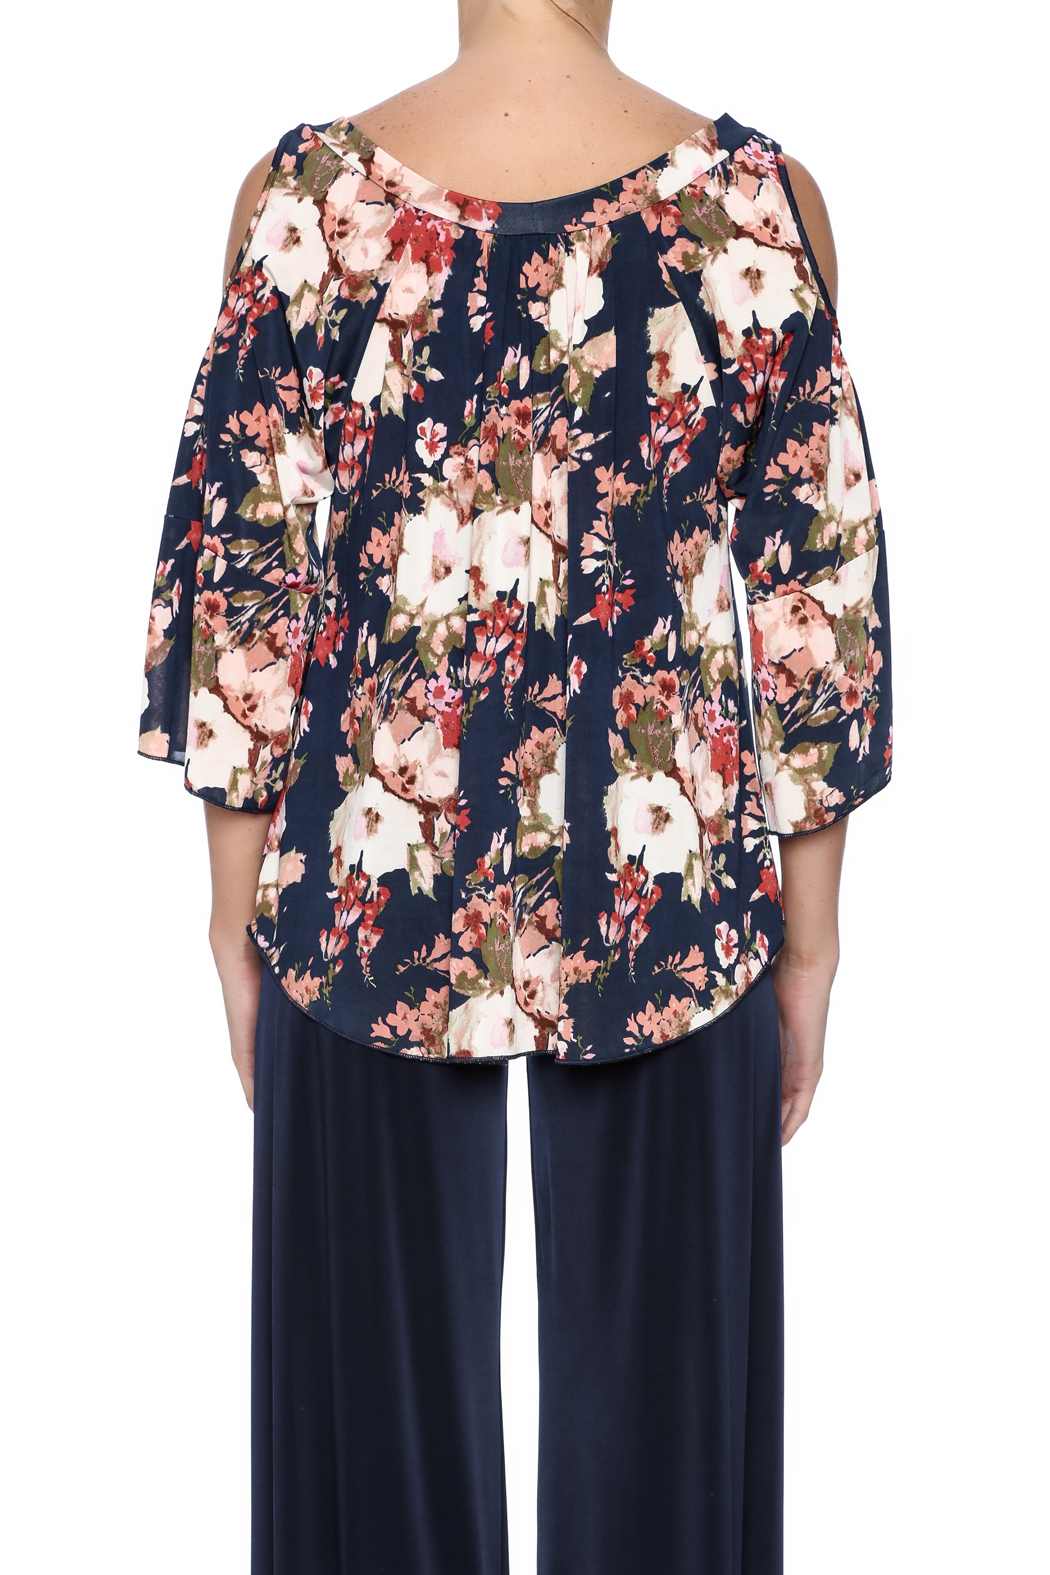 Veronica M Cold Shoulder Floral Top - Back Cropped Image